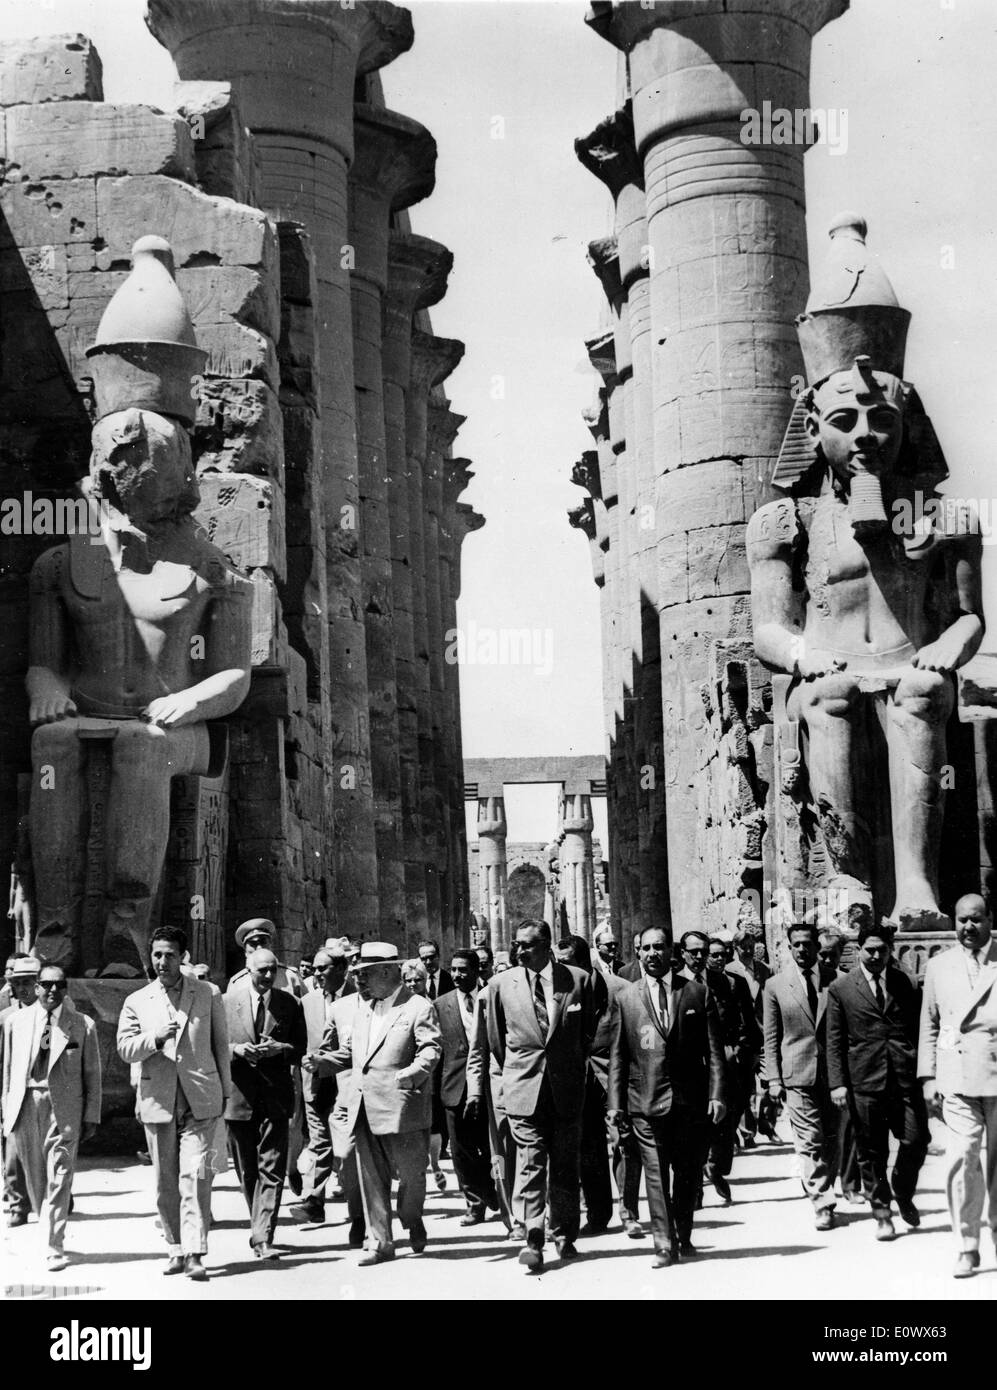 Nikita Khrushchev visits the Temple of Luxor with Gamal Abdel Nasser - Stock Image